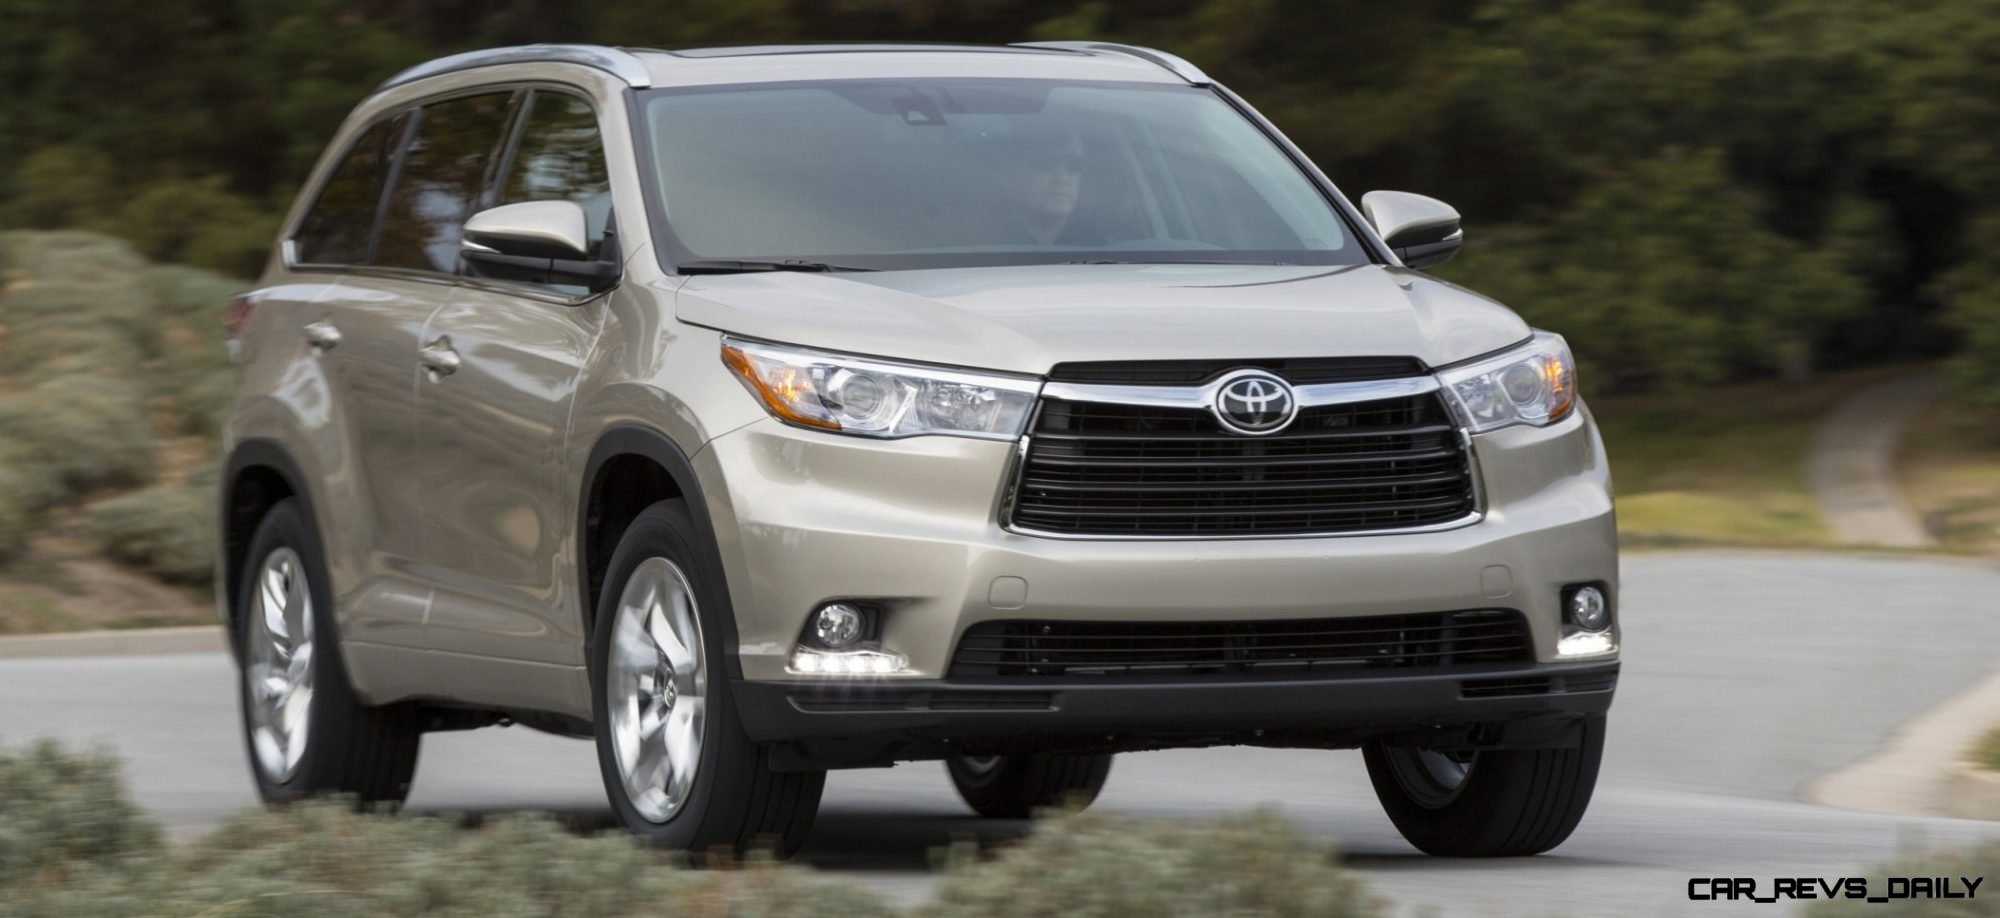 suv all highlander limited will interior instrument panel york toyota new be news hybrid